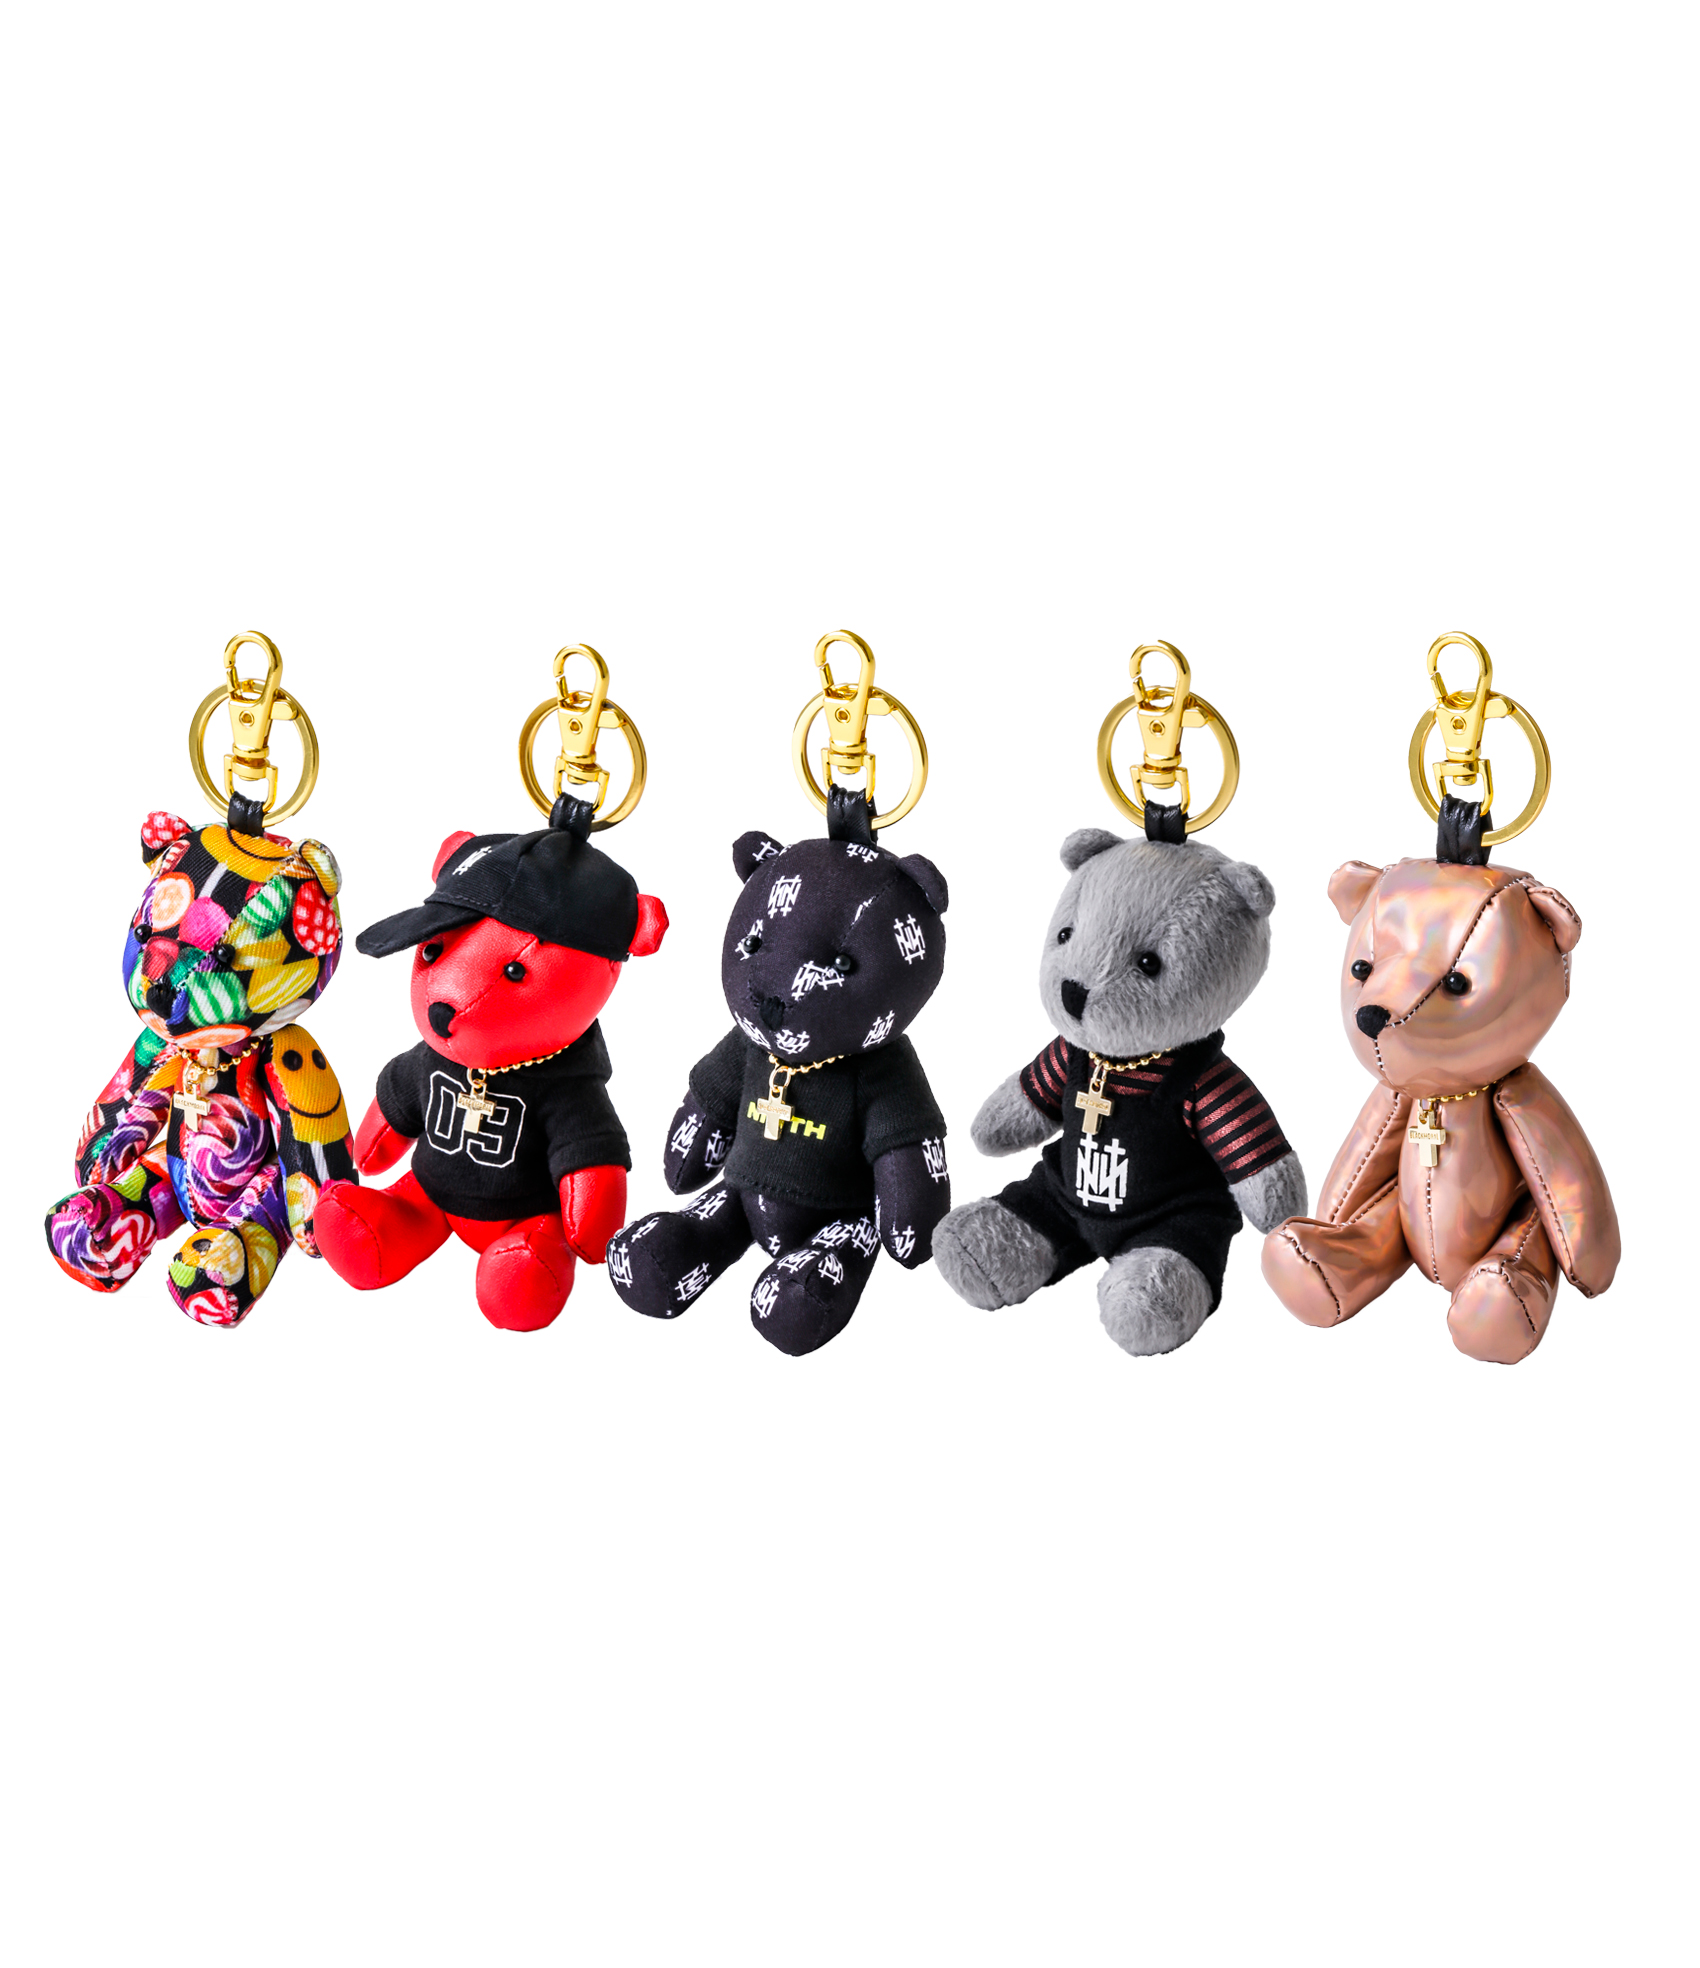 BEAR KEY RING (KAI PRODUCE)